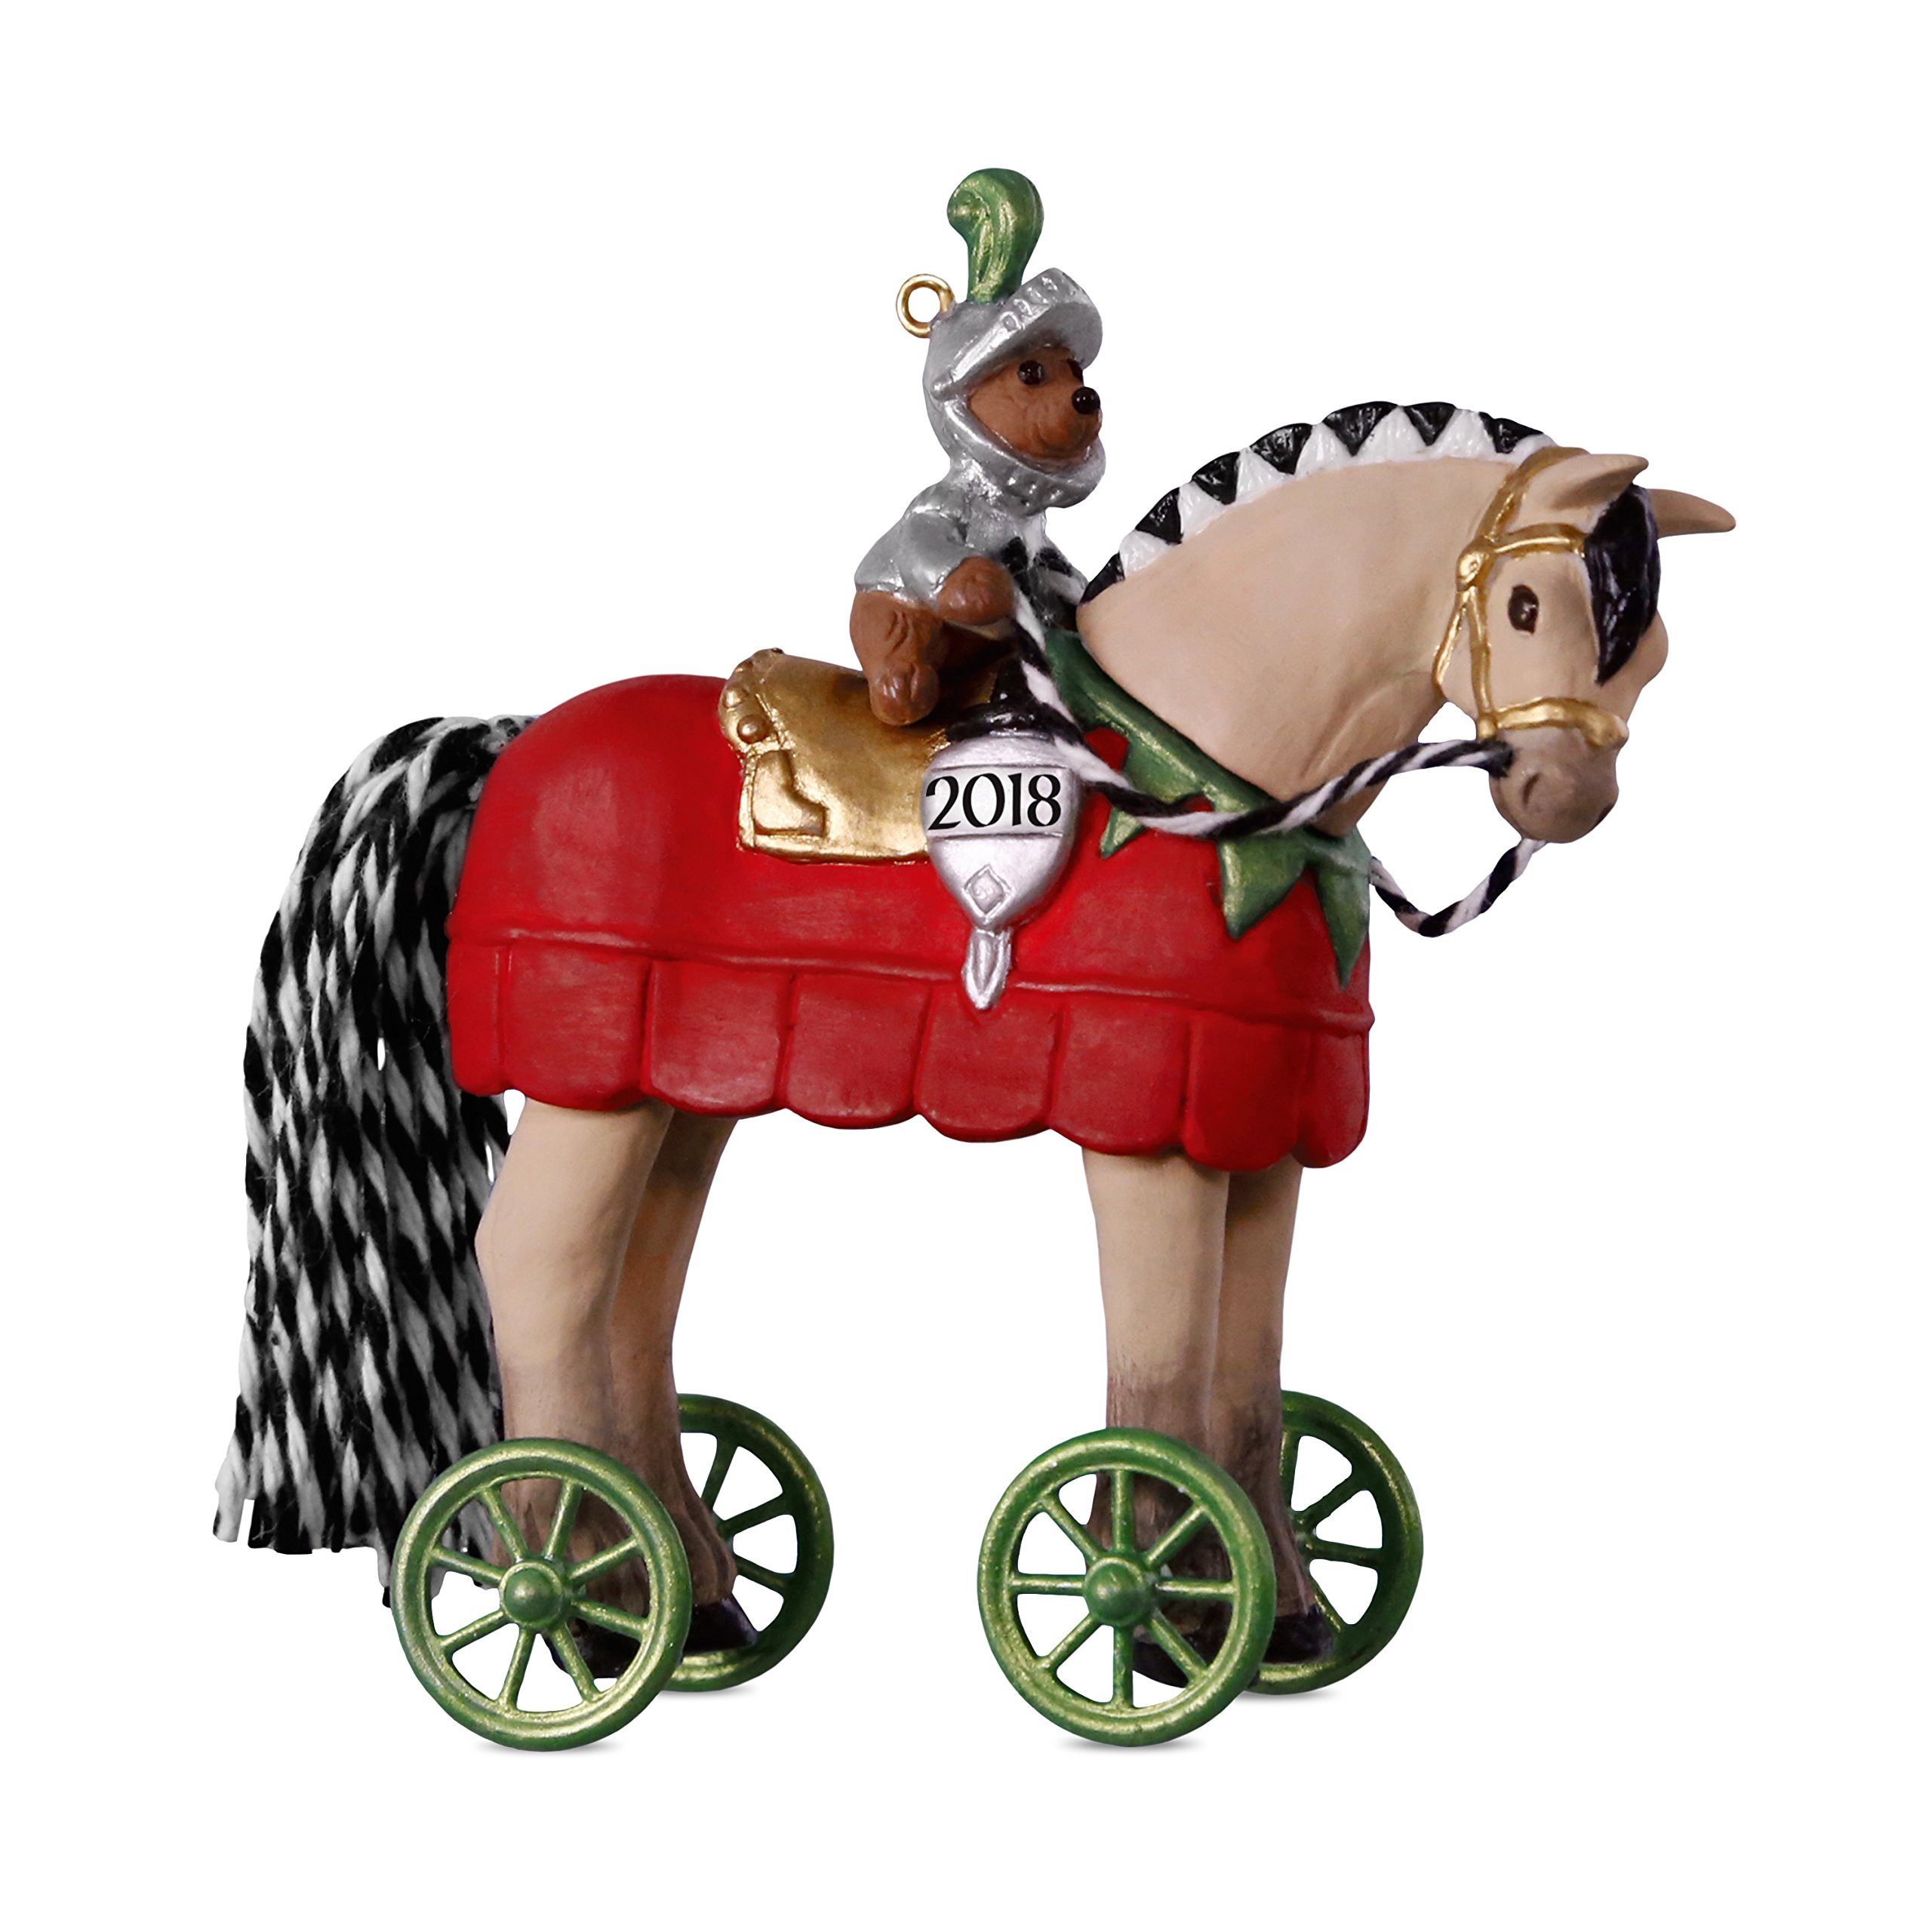 Hallmark Keepsake Christmas Ornament 2018 Year Dated, A Pony for Christmas Knight in Shining Armor